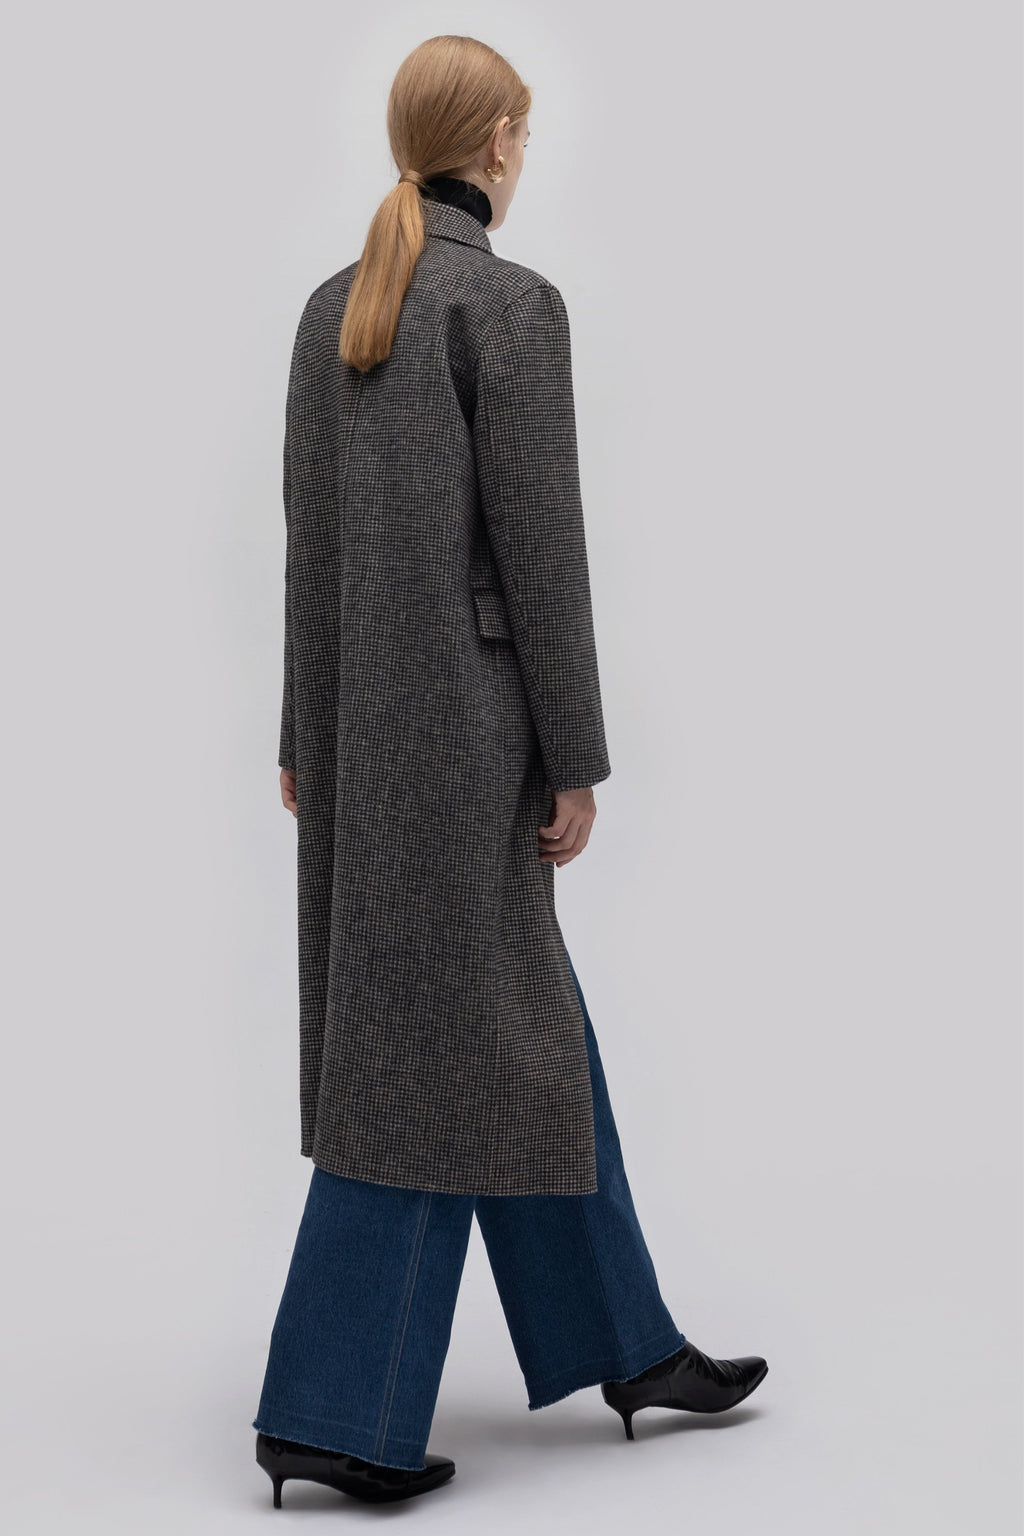 YUEL XIANG houndstooth wool coat